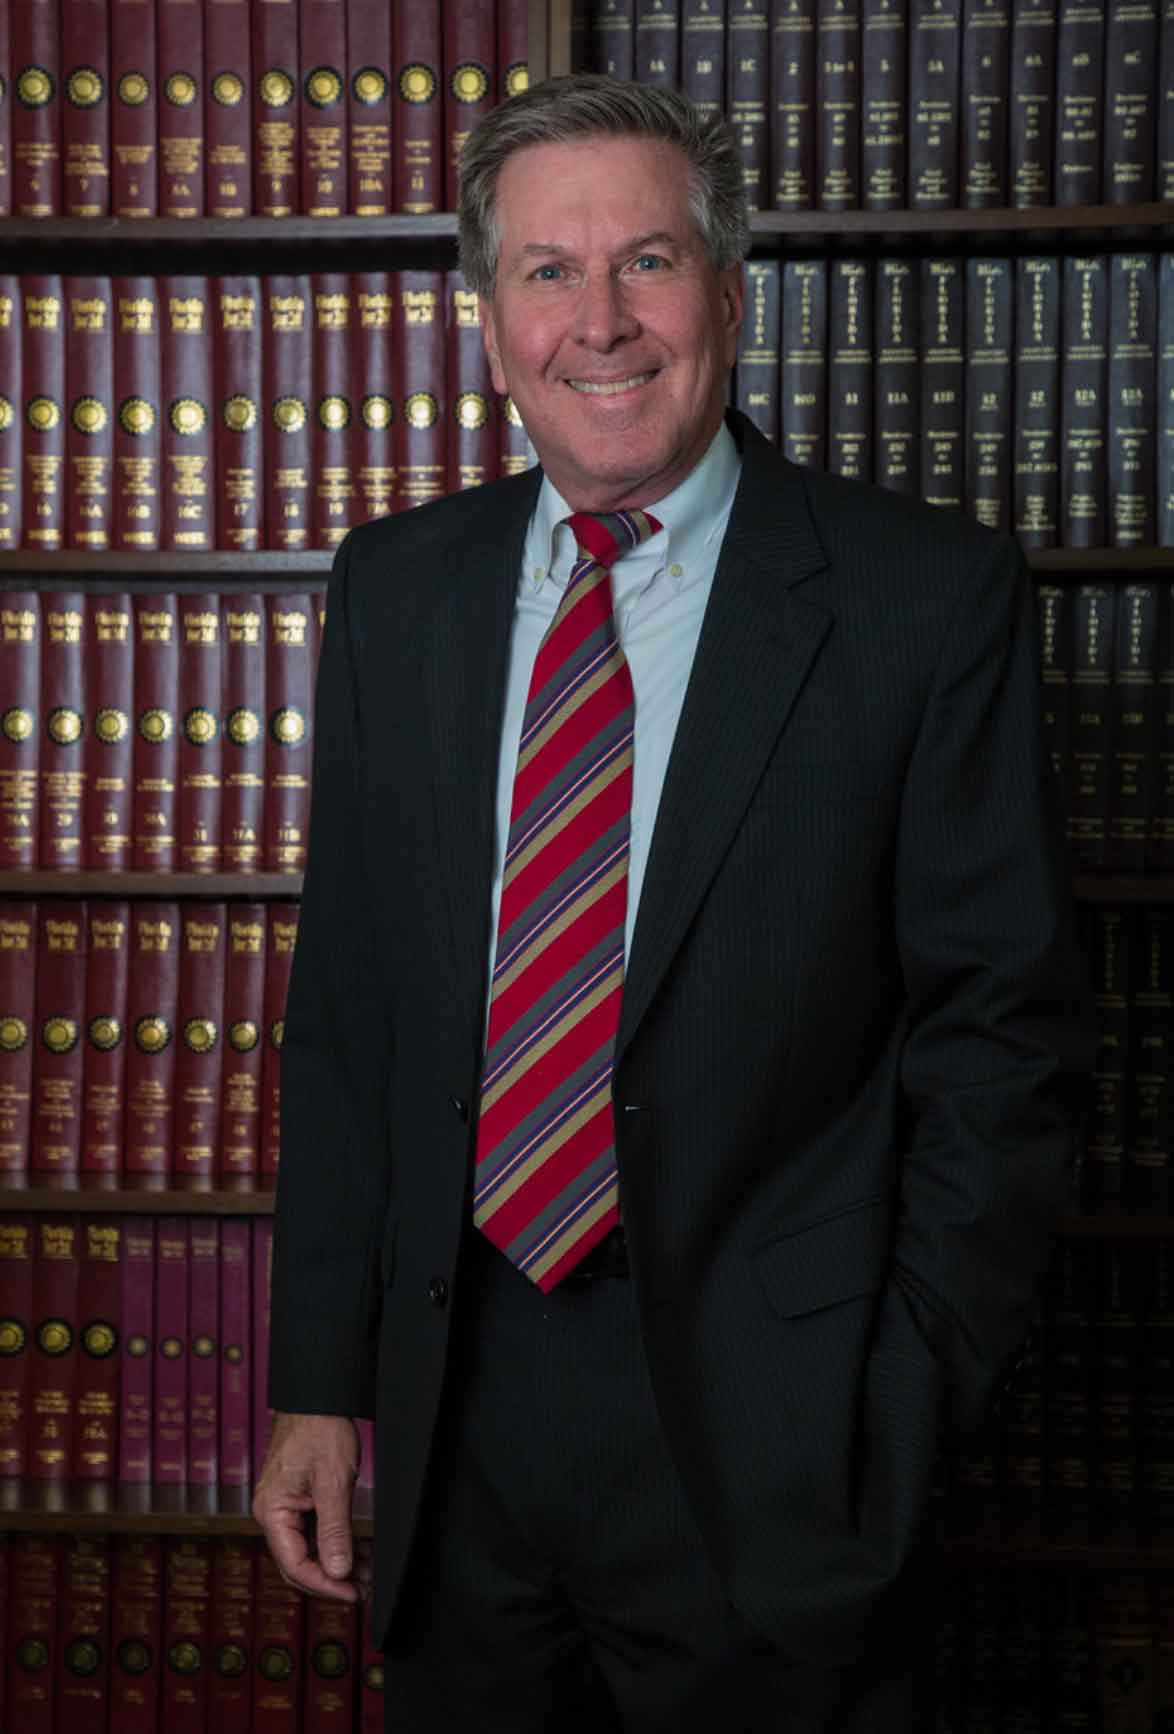 James A. Barks, Central Florida attorney